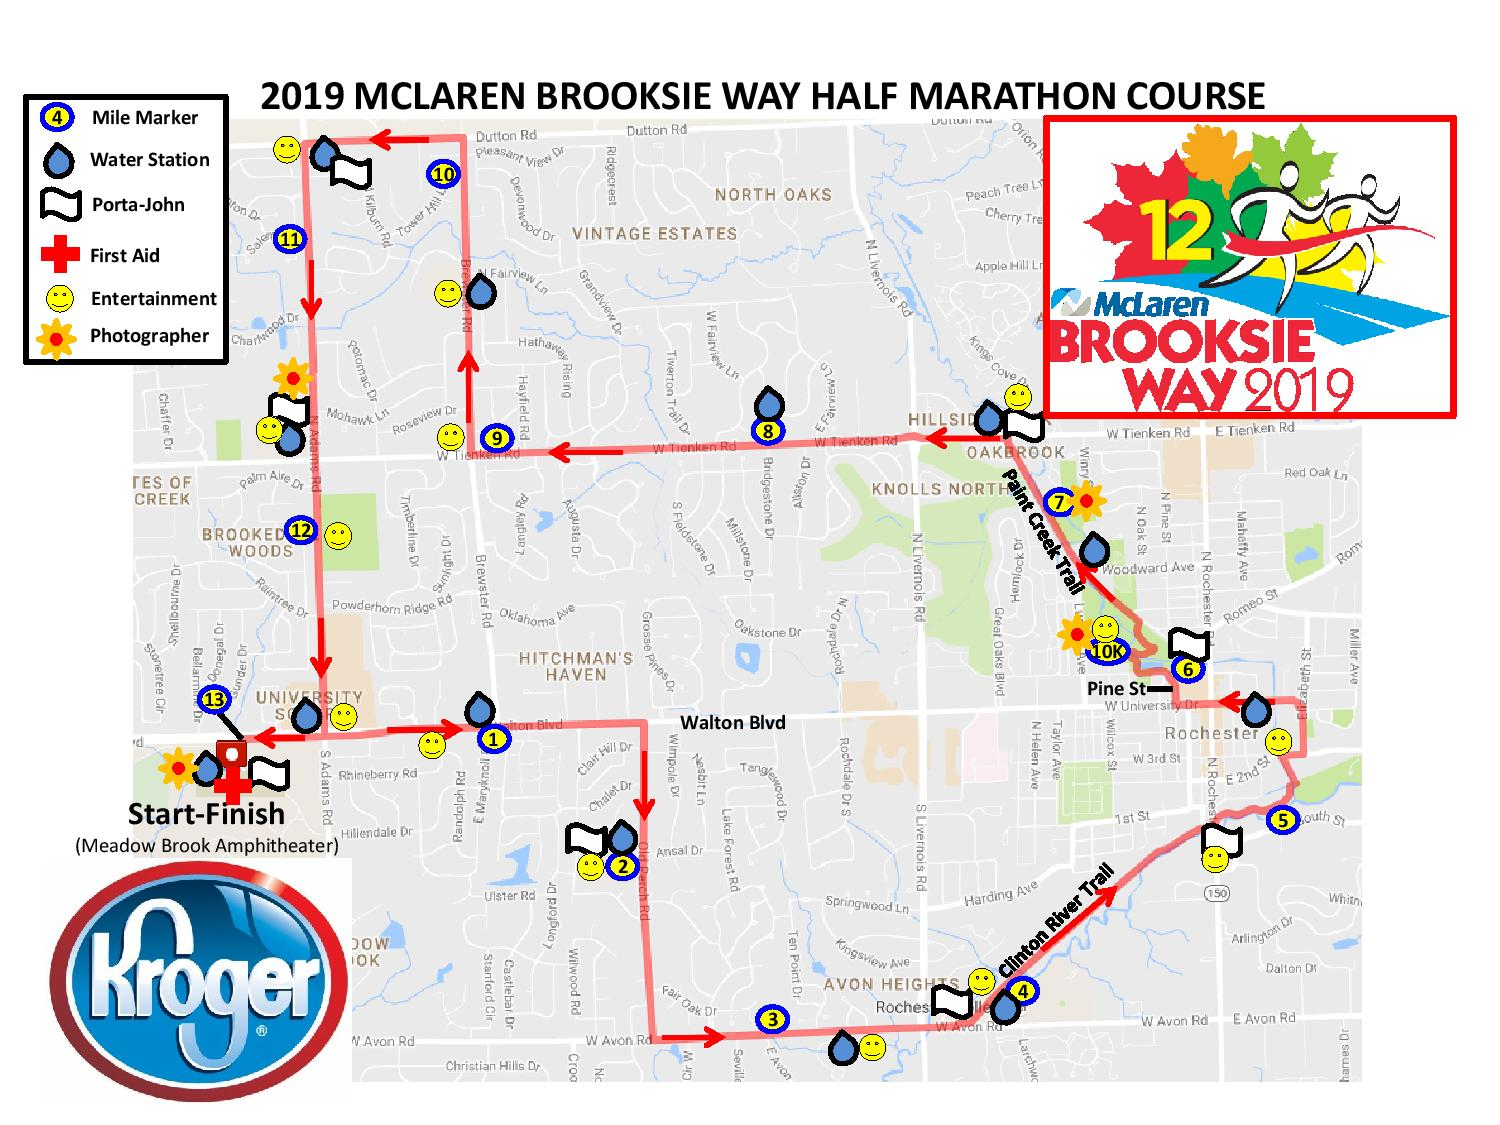 2019_Brooksie_Way_Half_Marathon_Course_Map-page-001